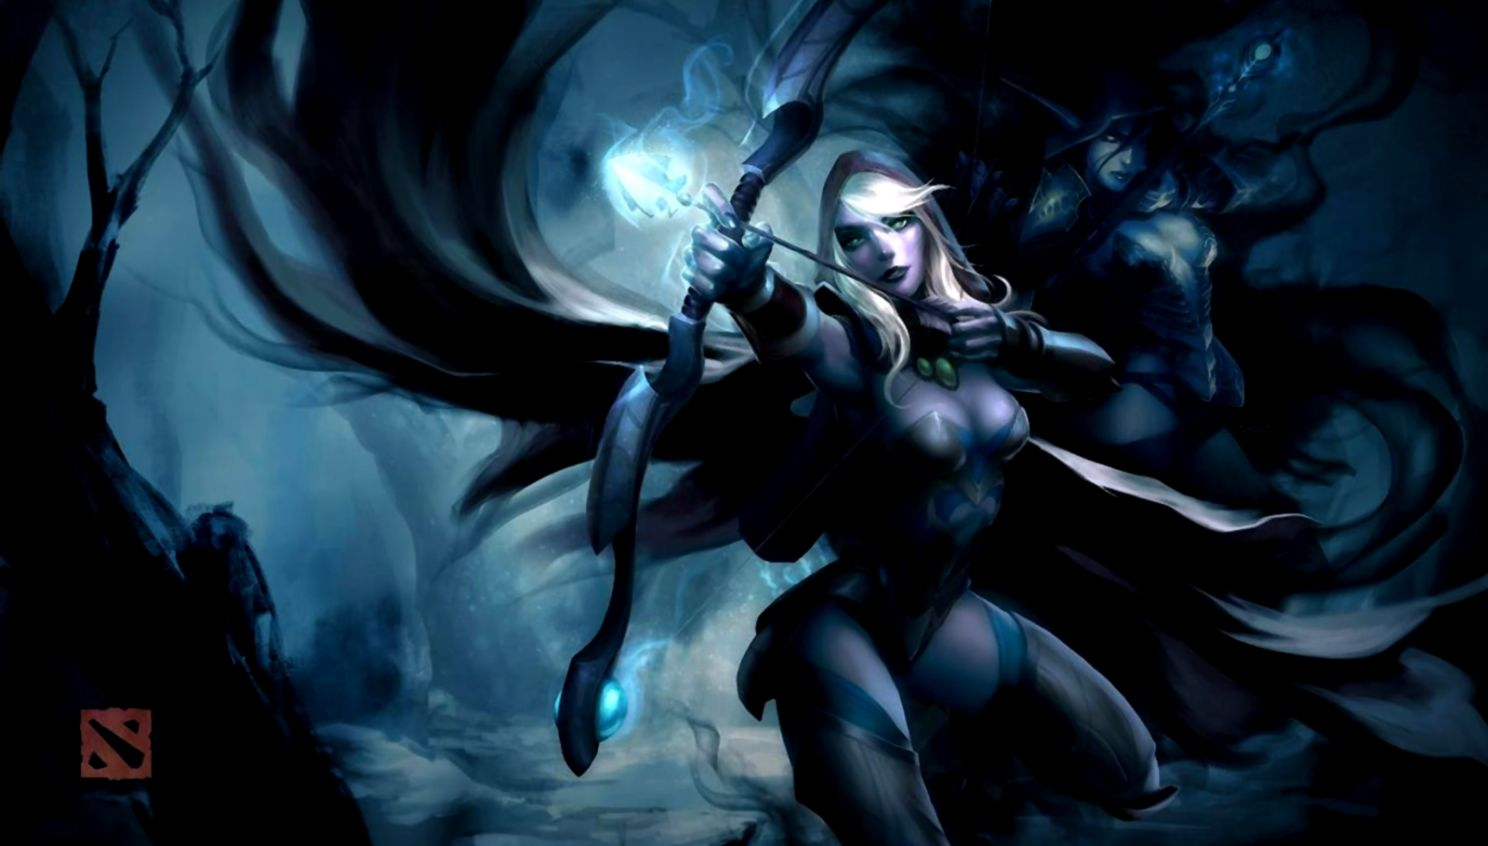 Dota 2 Drow Ranger Hd Wallpaper Link Wallpapers